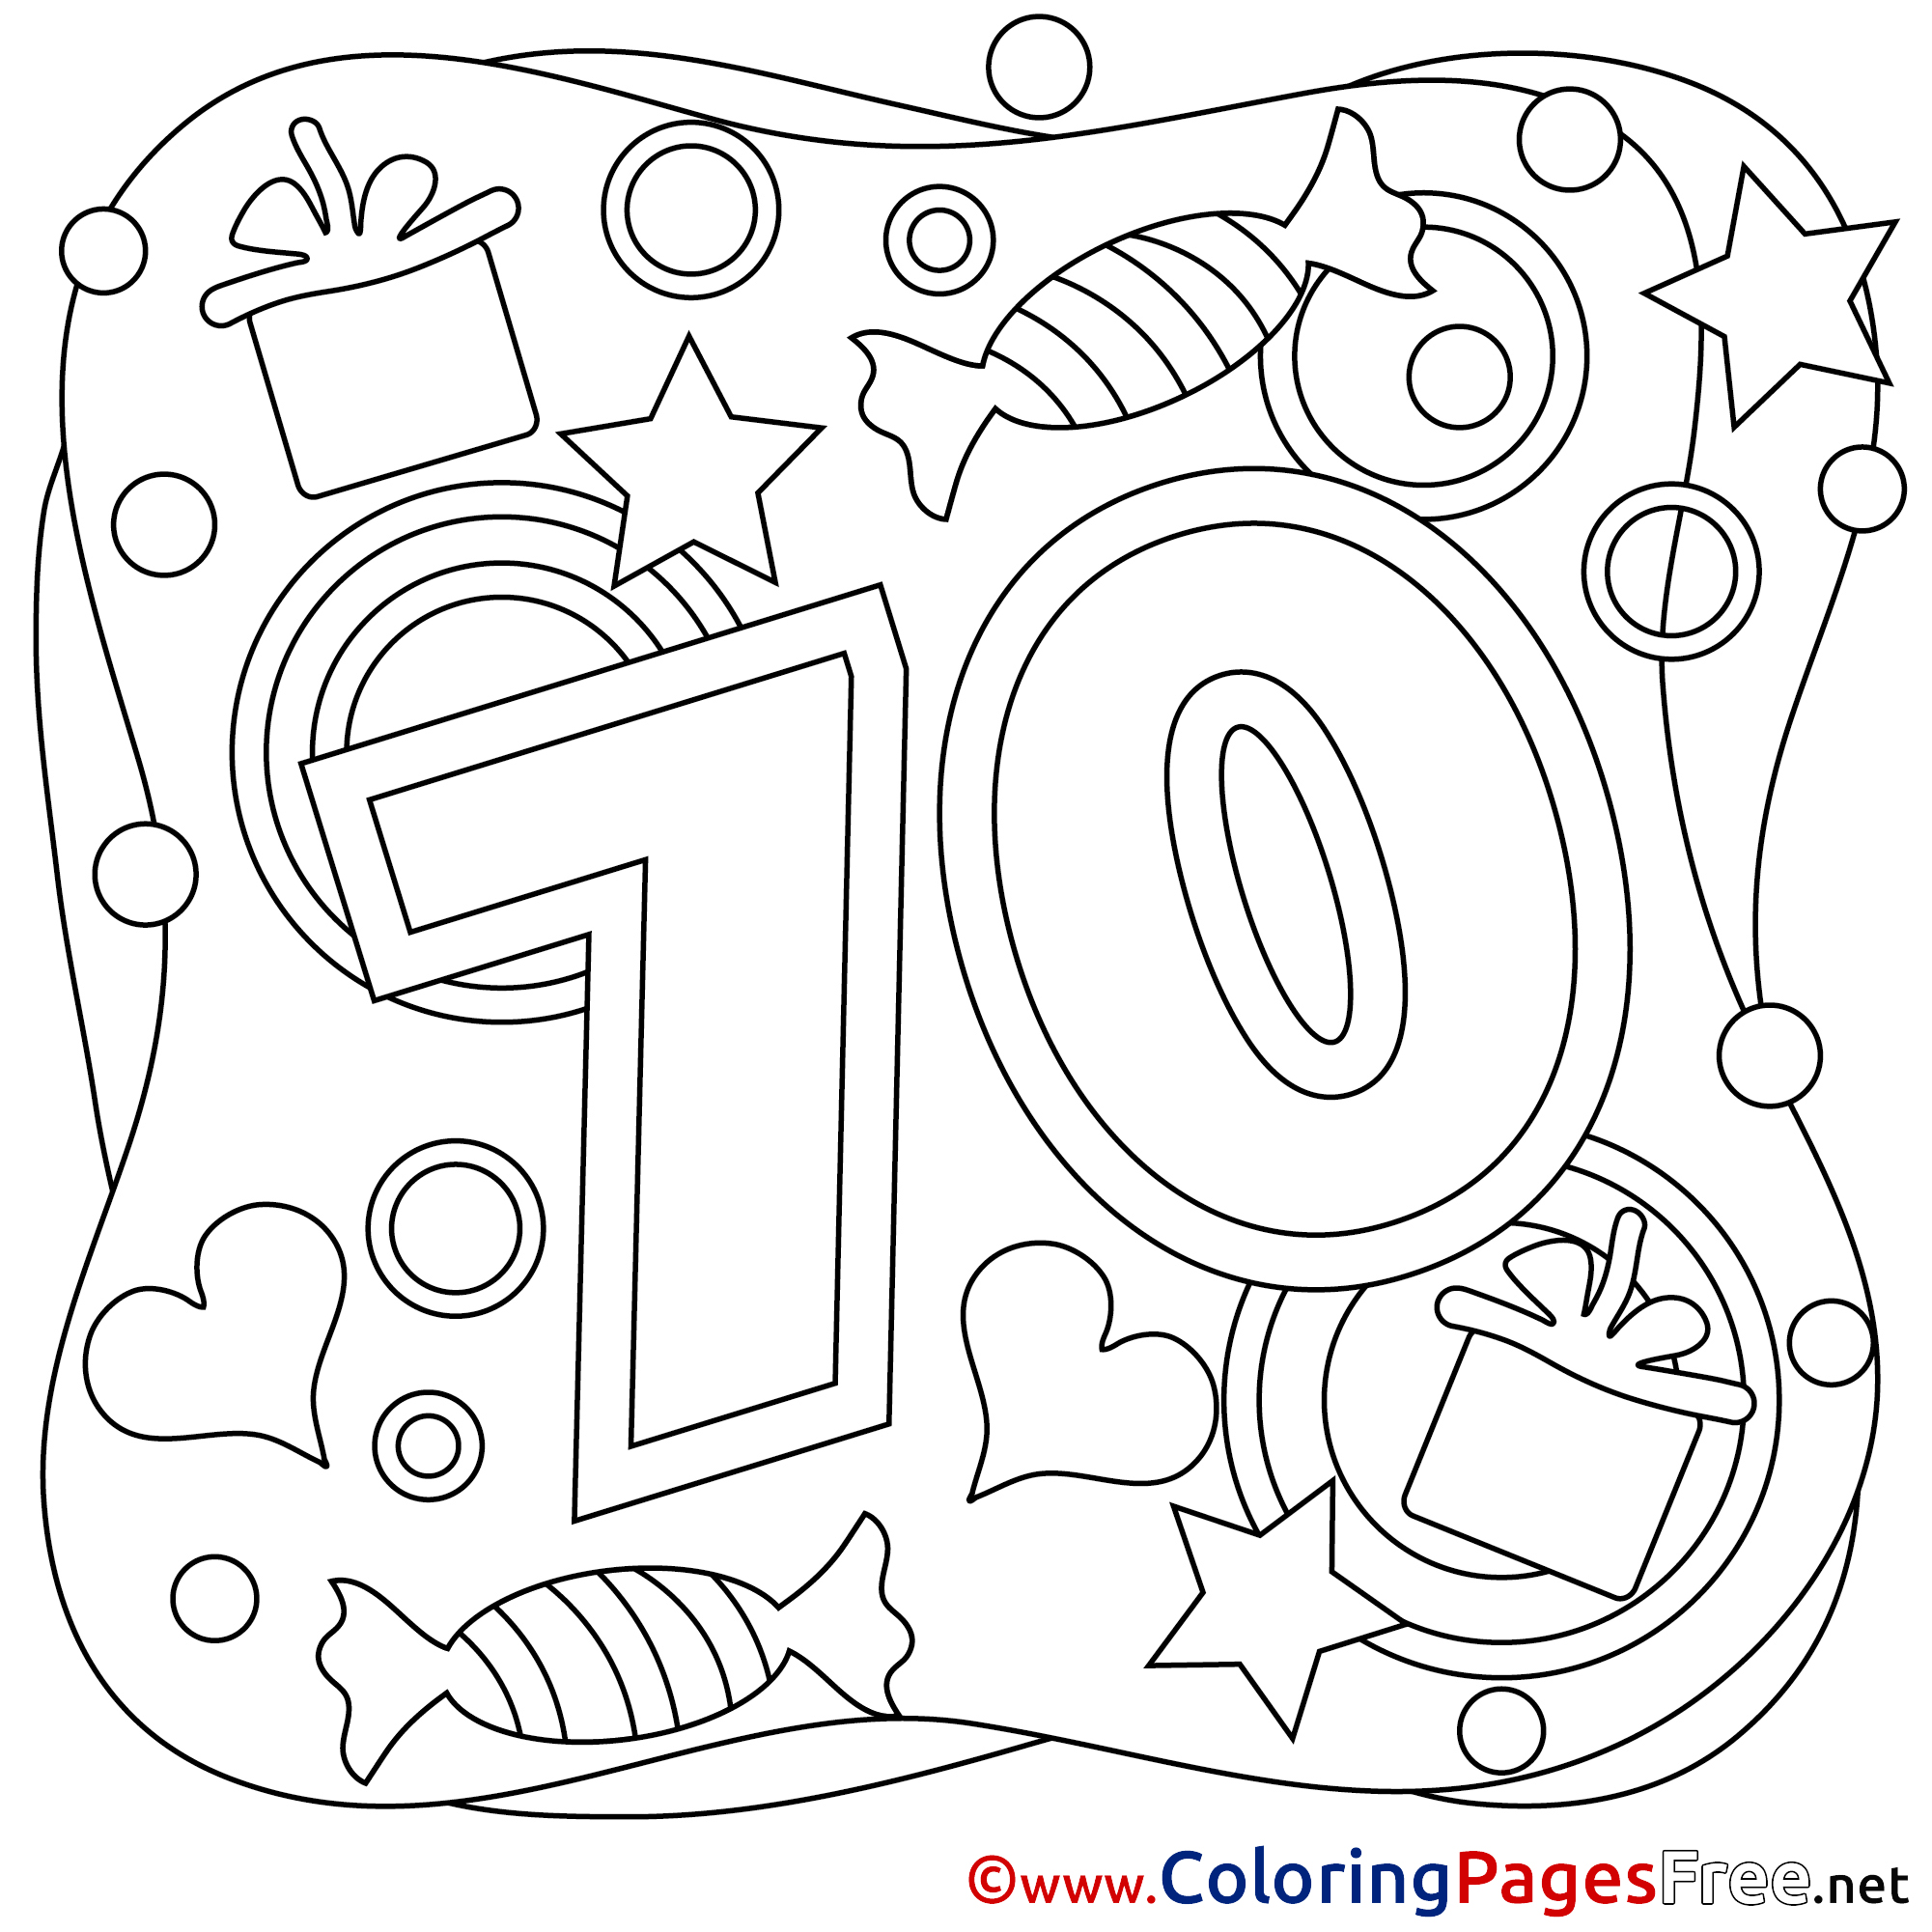 happy 70th birthday coloring pages 70 years balloons printable happy birthday coloring sheets birthday coloring 70th pages happy